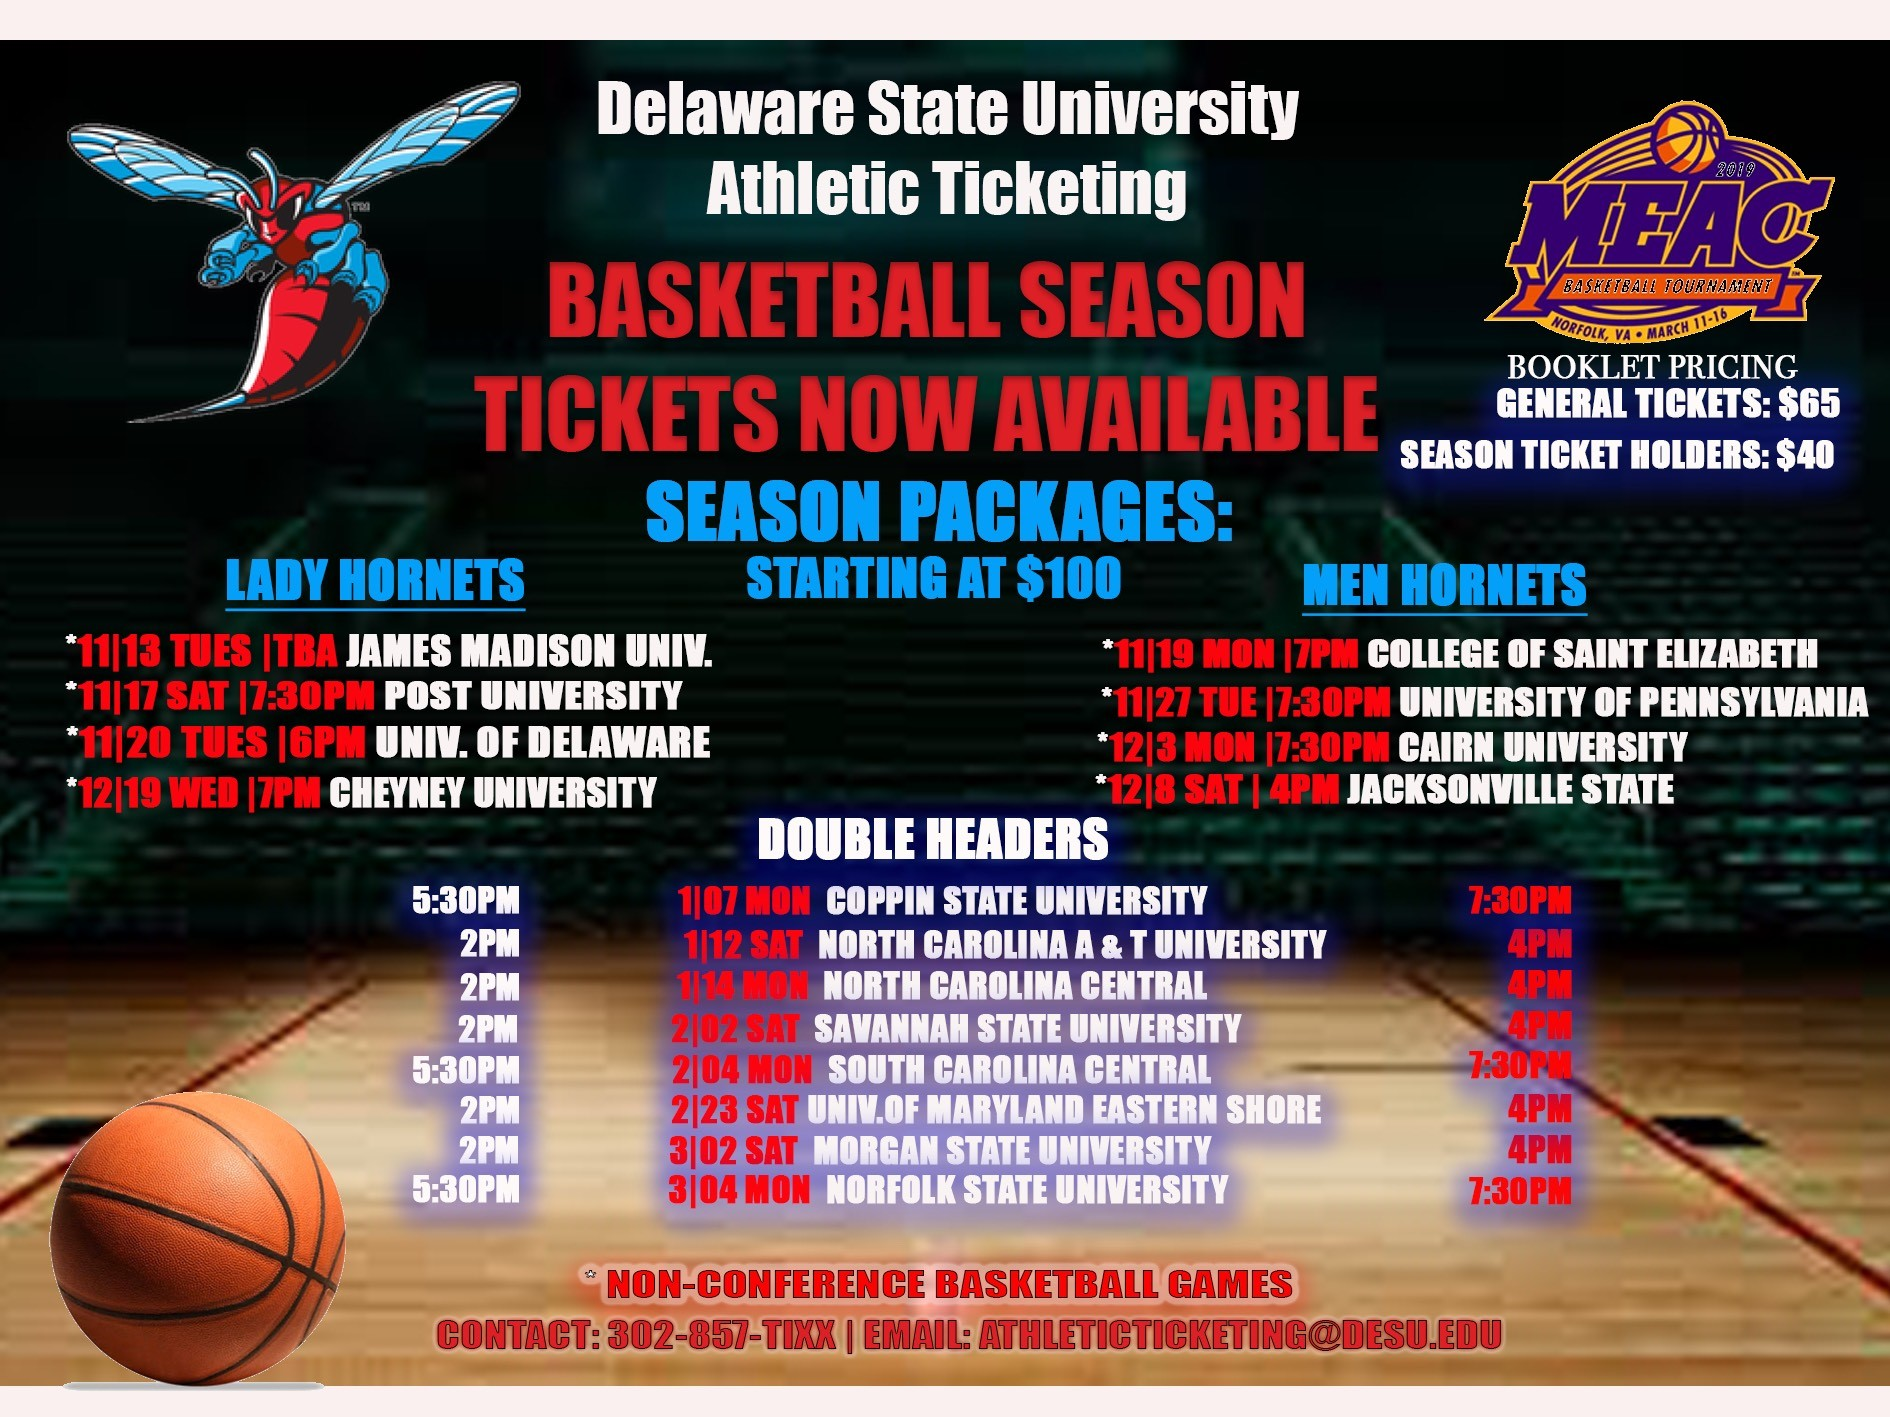 Delaware State University |  Athletics Ticketing